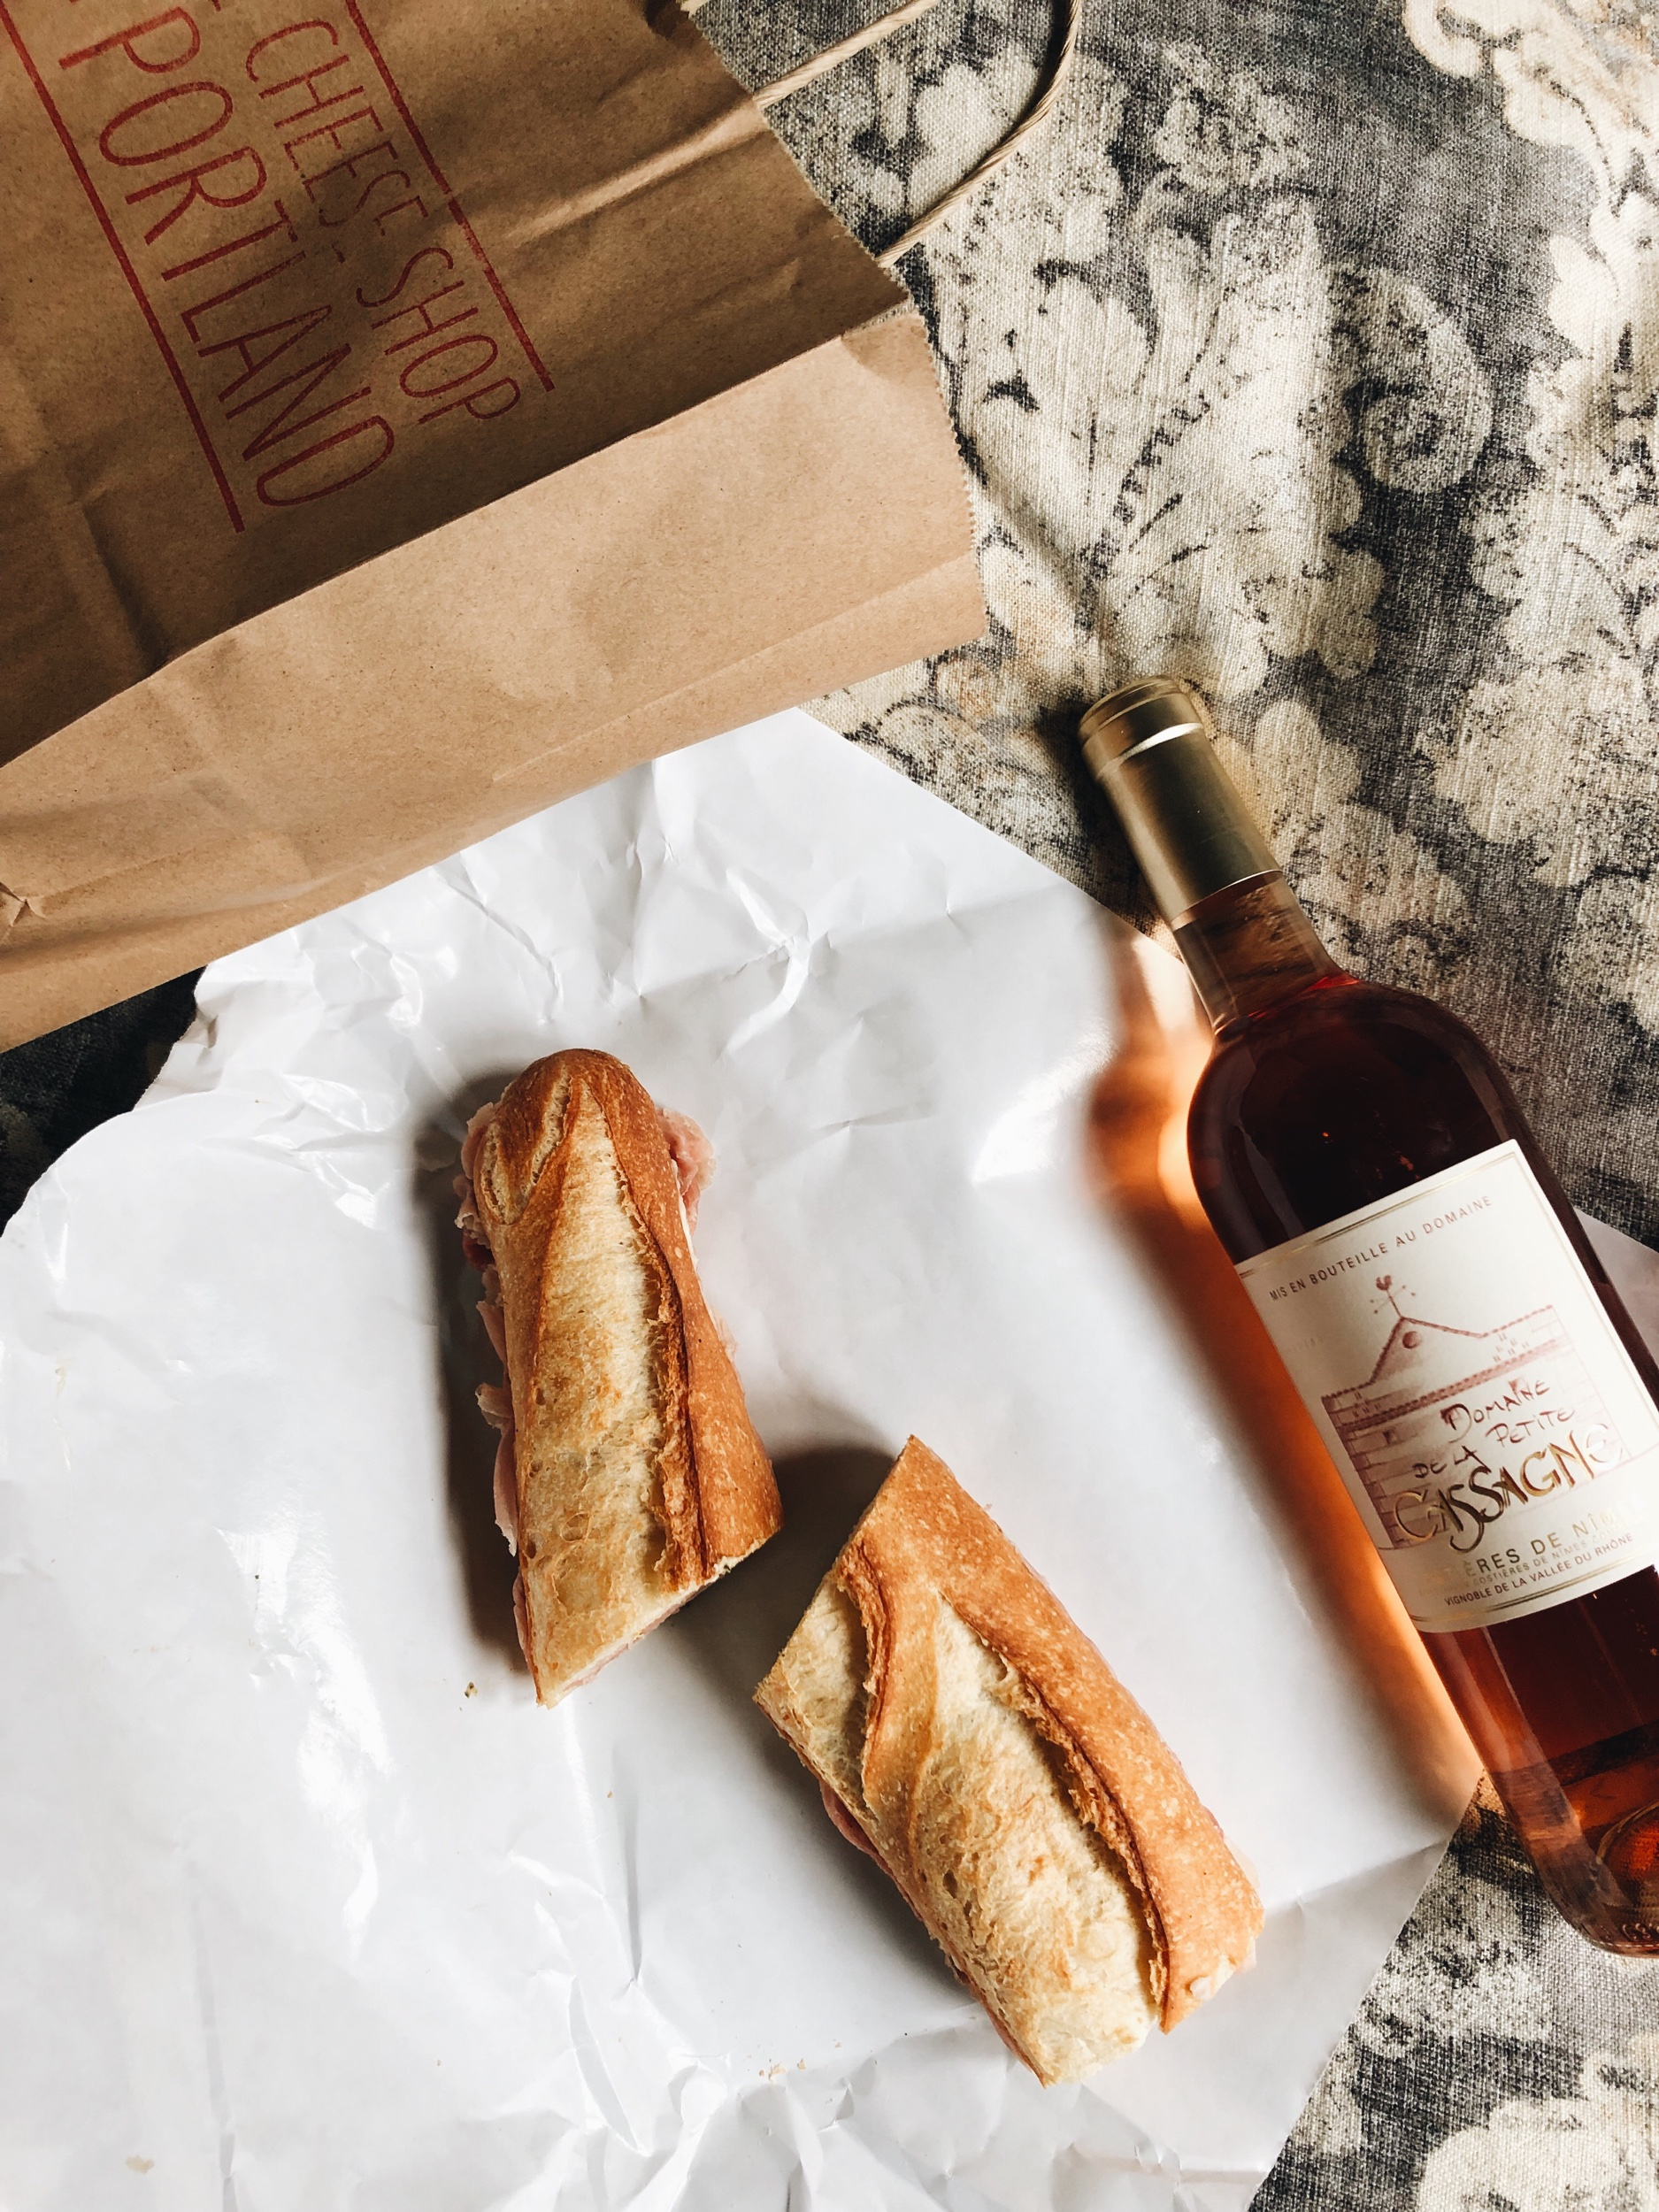 The best sandwich I've had in a long time: ham and butter sandwich, and a bottle of rosé from the The Cheese Shop of Portland